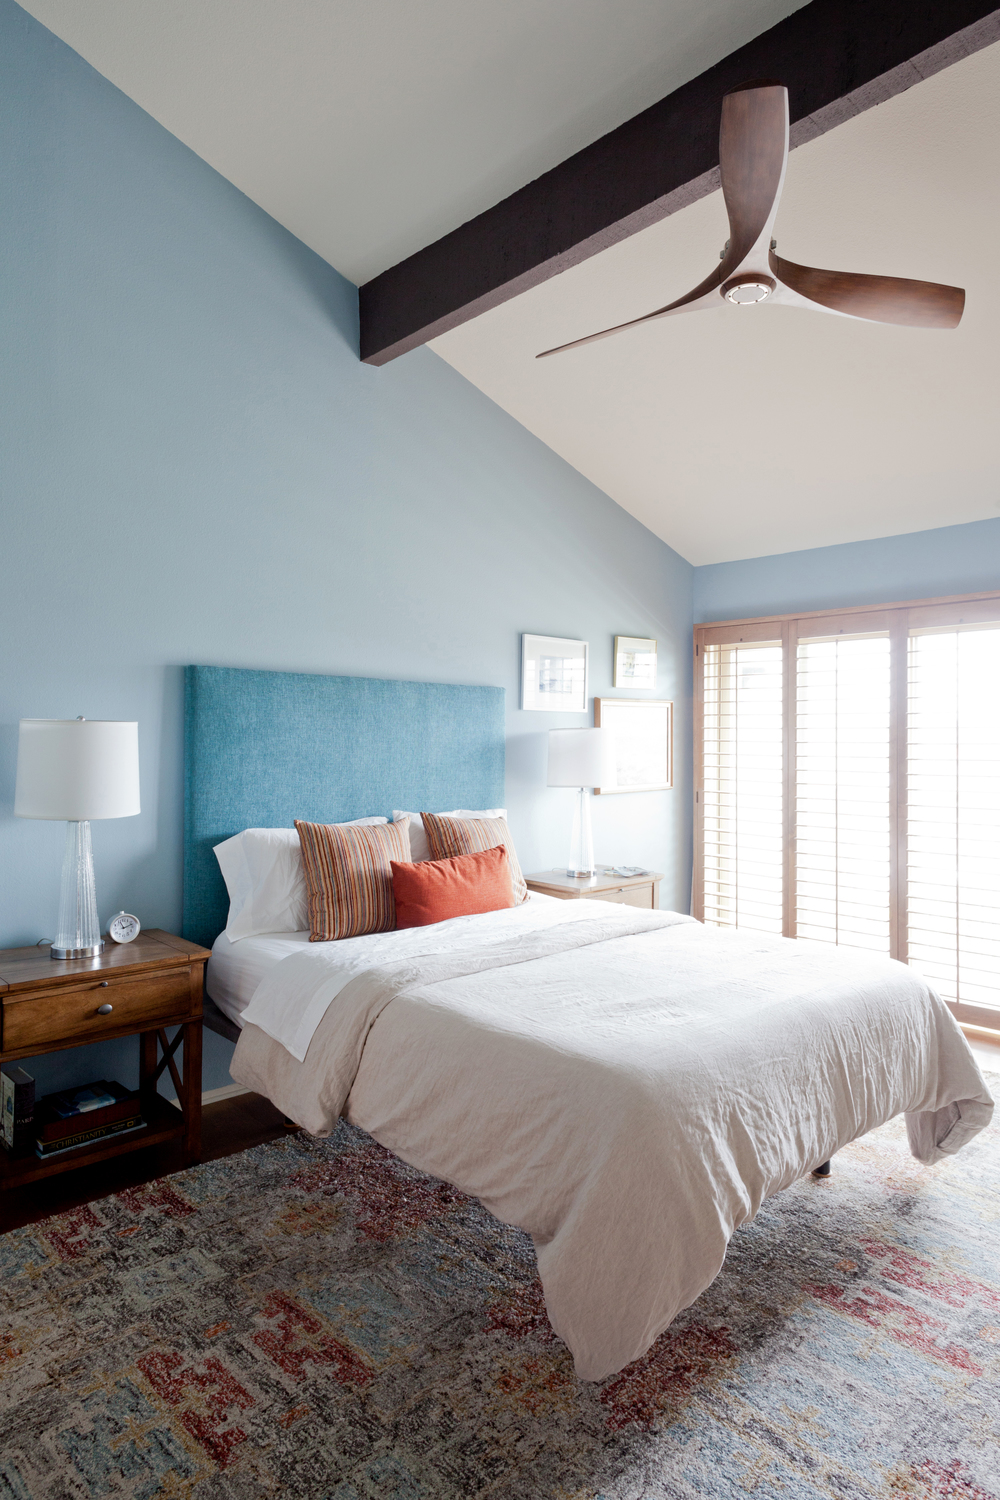 The beam and the gorgeous ceiling fan.                                                                                                                                        photo by Amy Bartlam